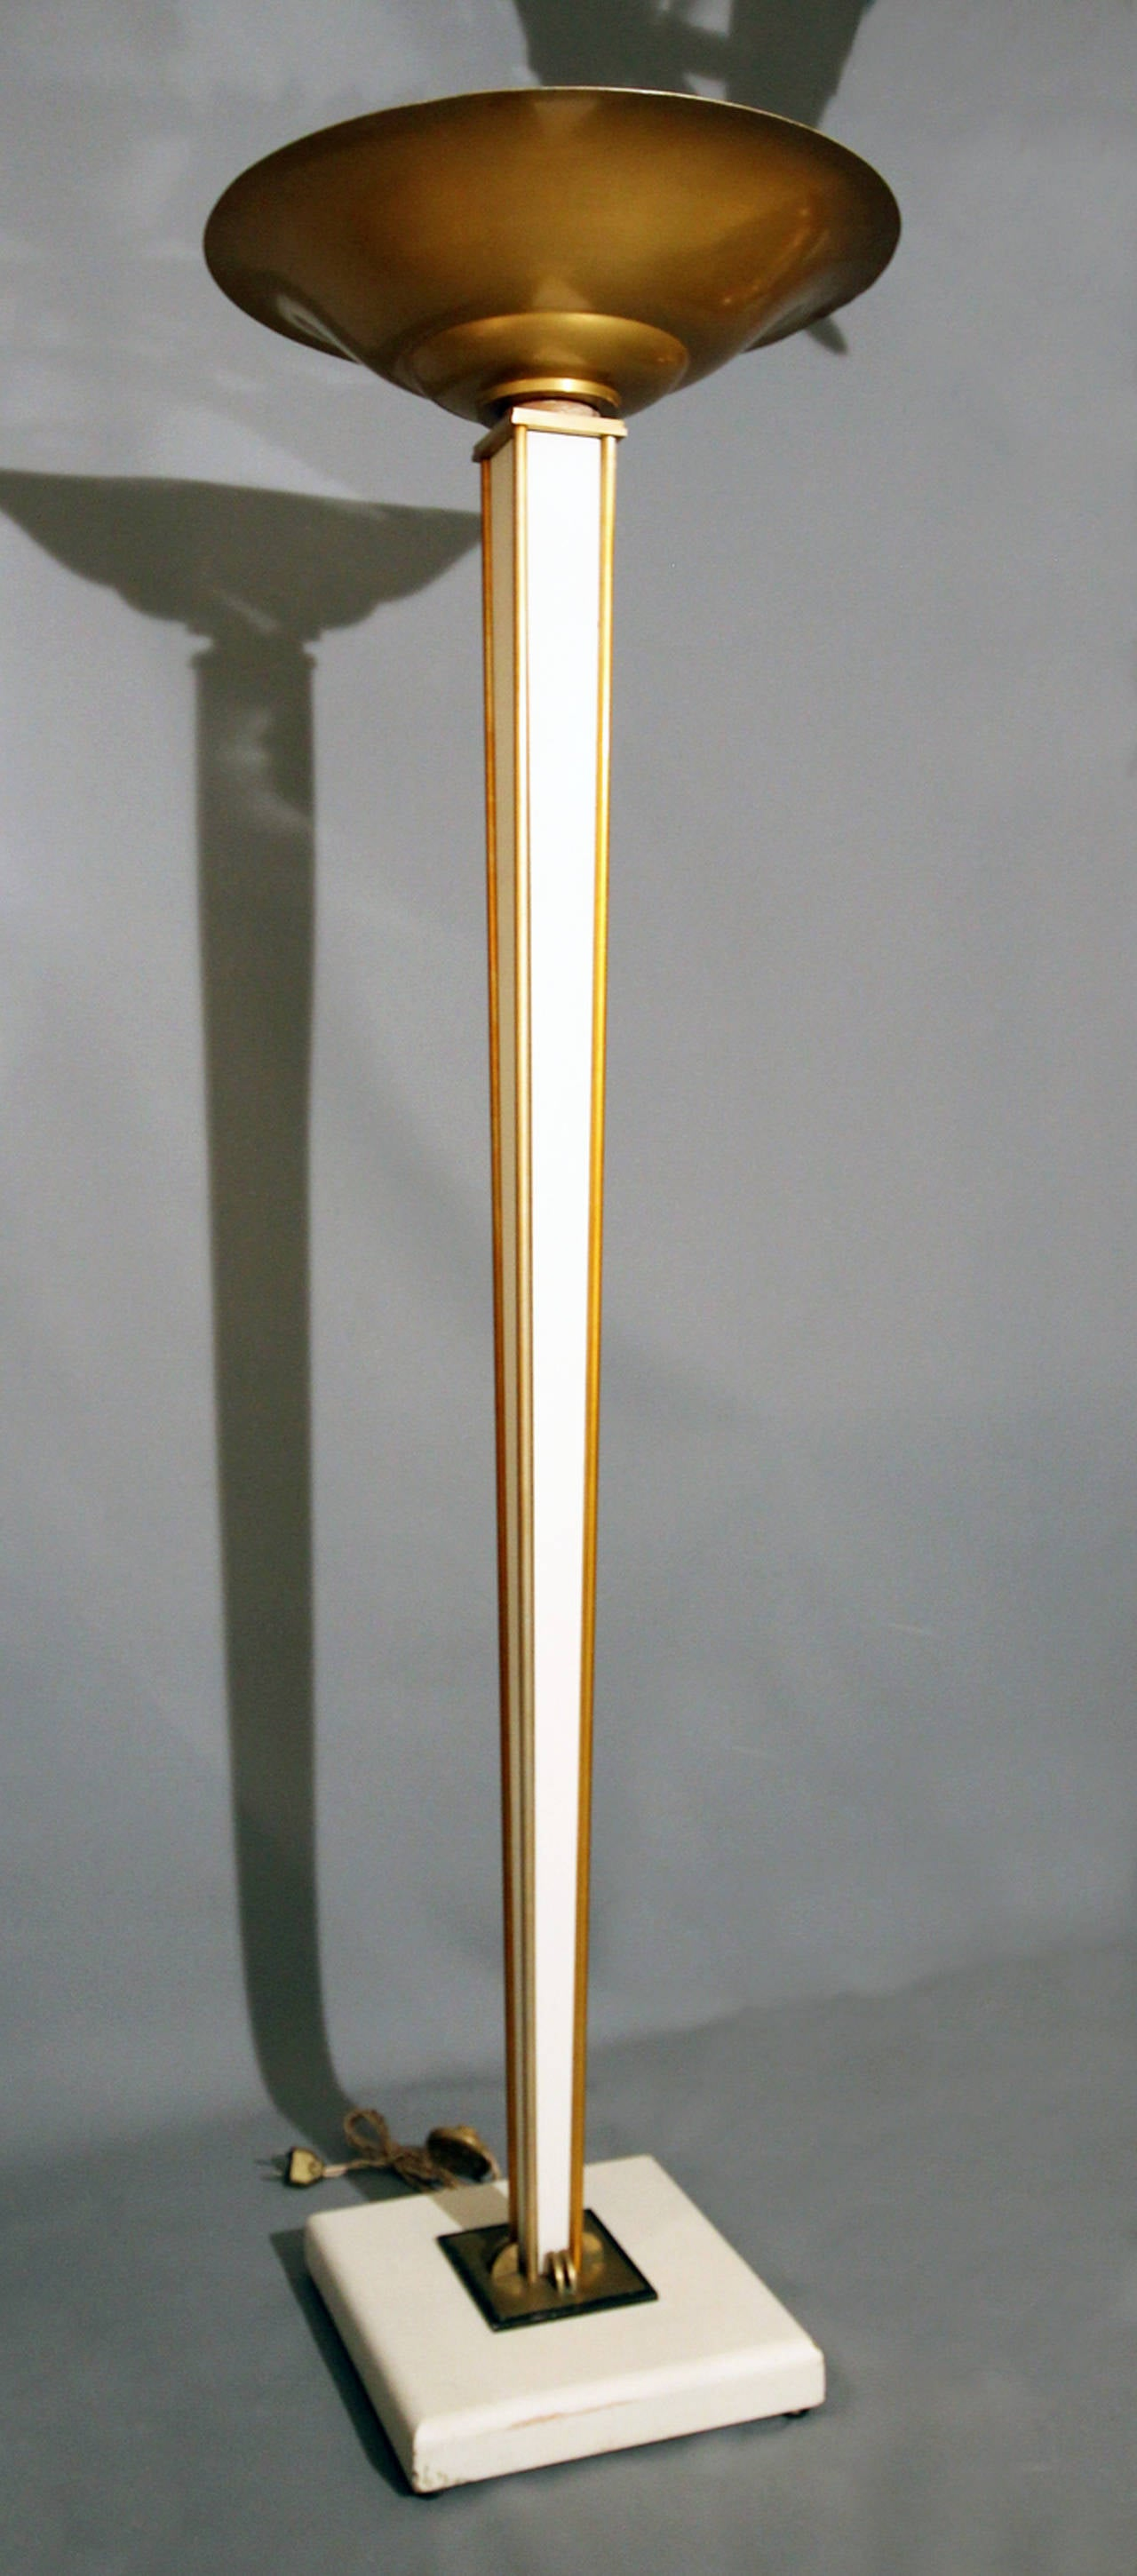 Jacques Adnet (1900-1984).